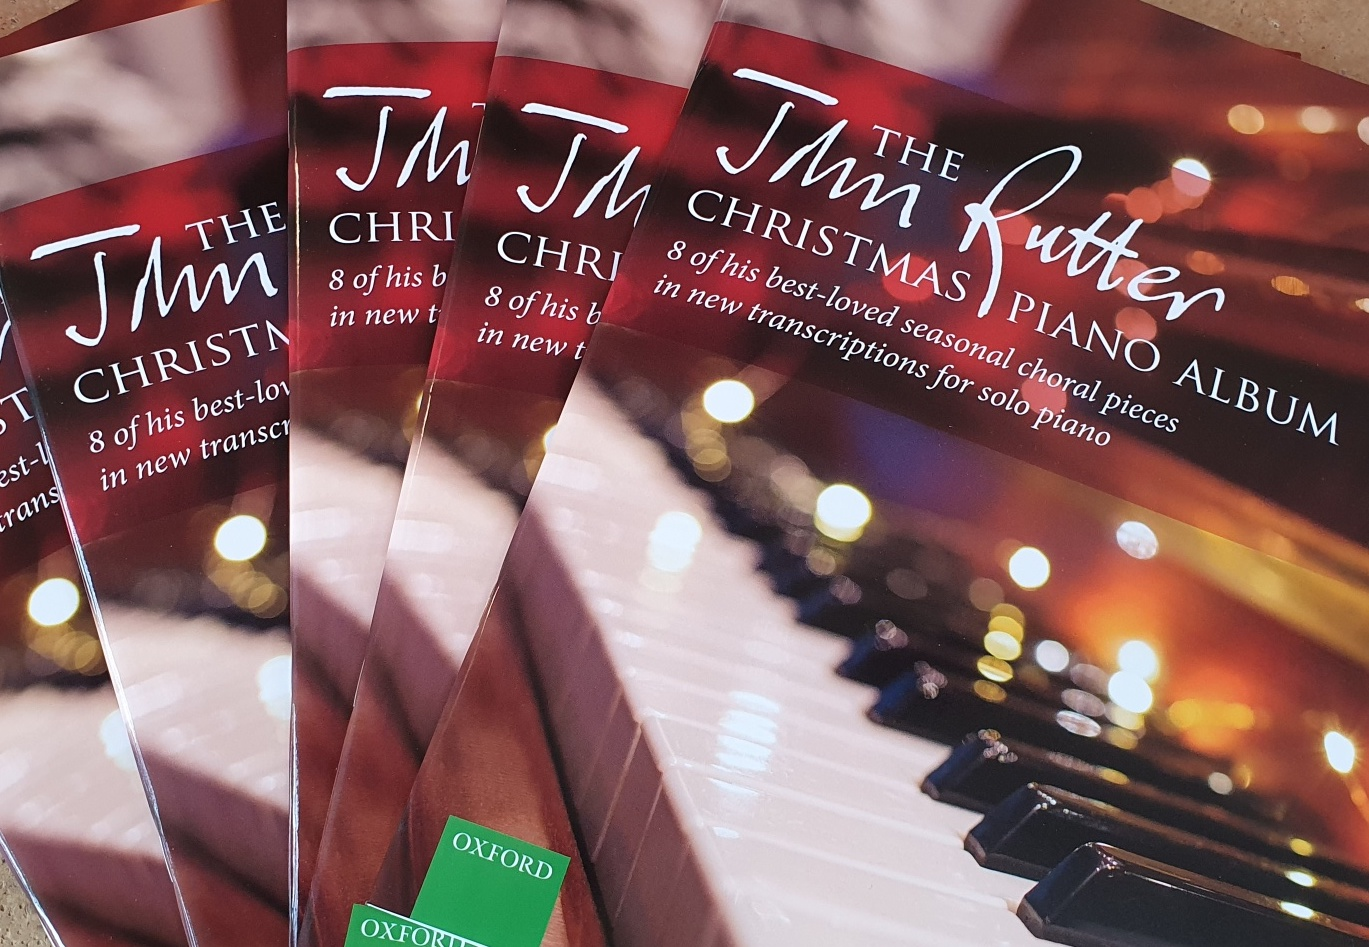 The John Rutter Christmas Piano Album sheet music is out now